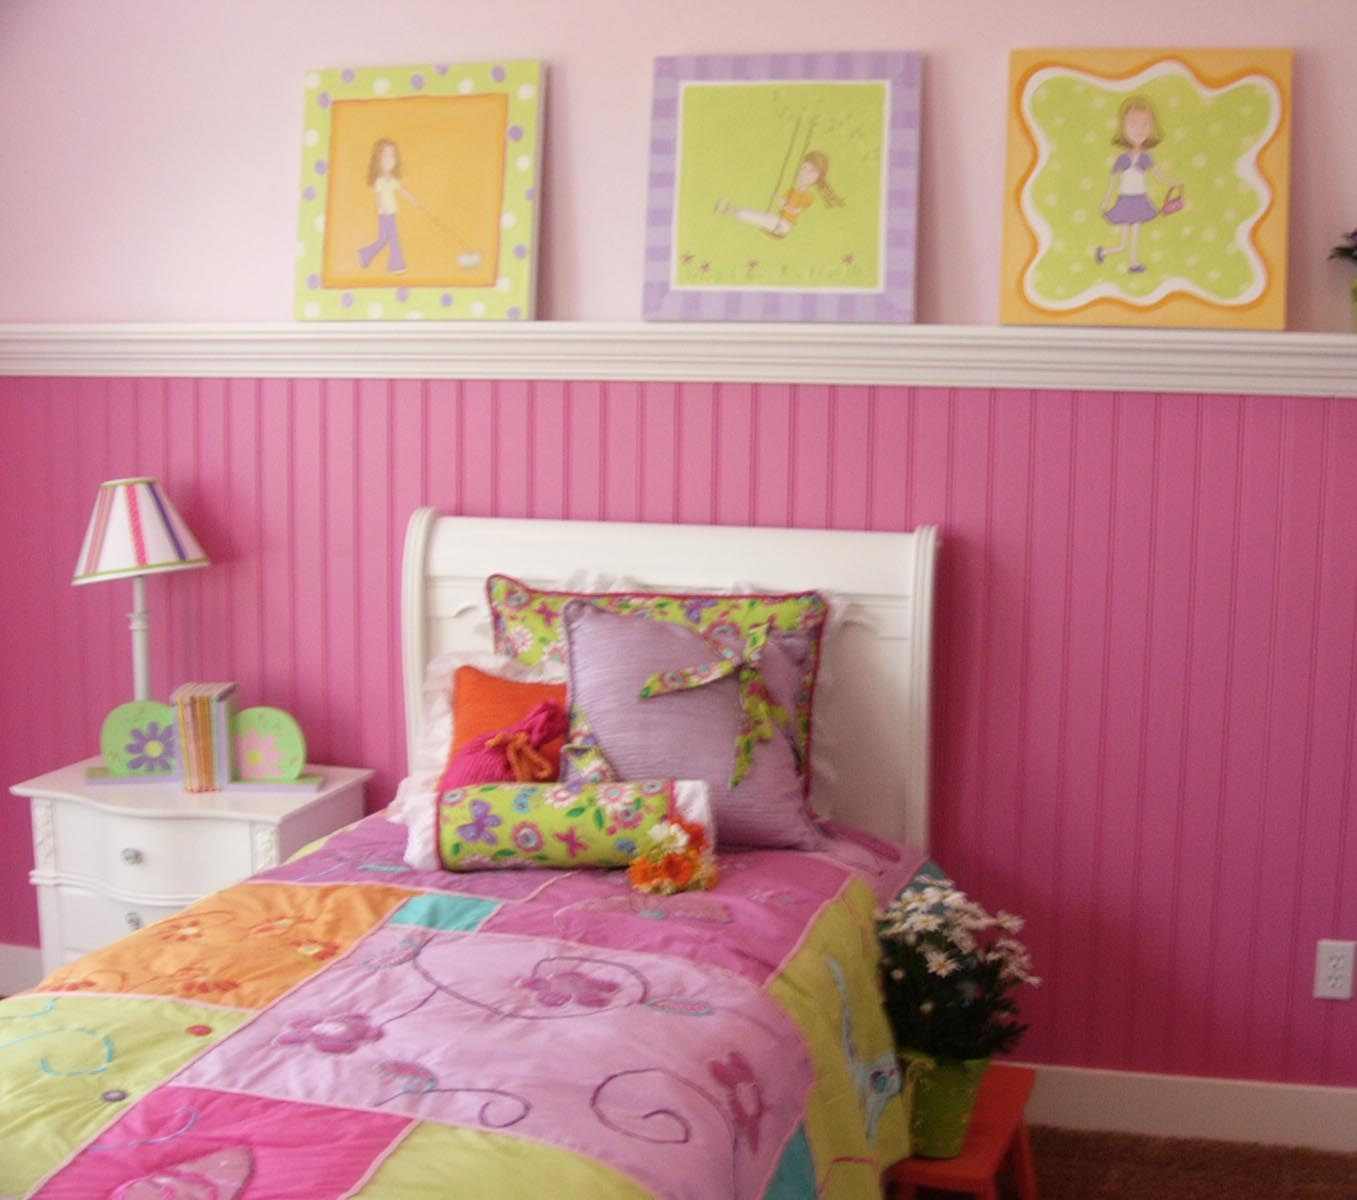 pink bedroom design and decorating ideas for children and adults